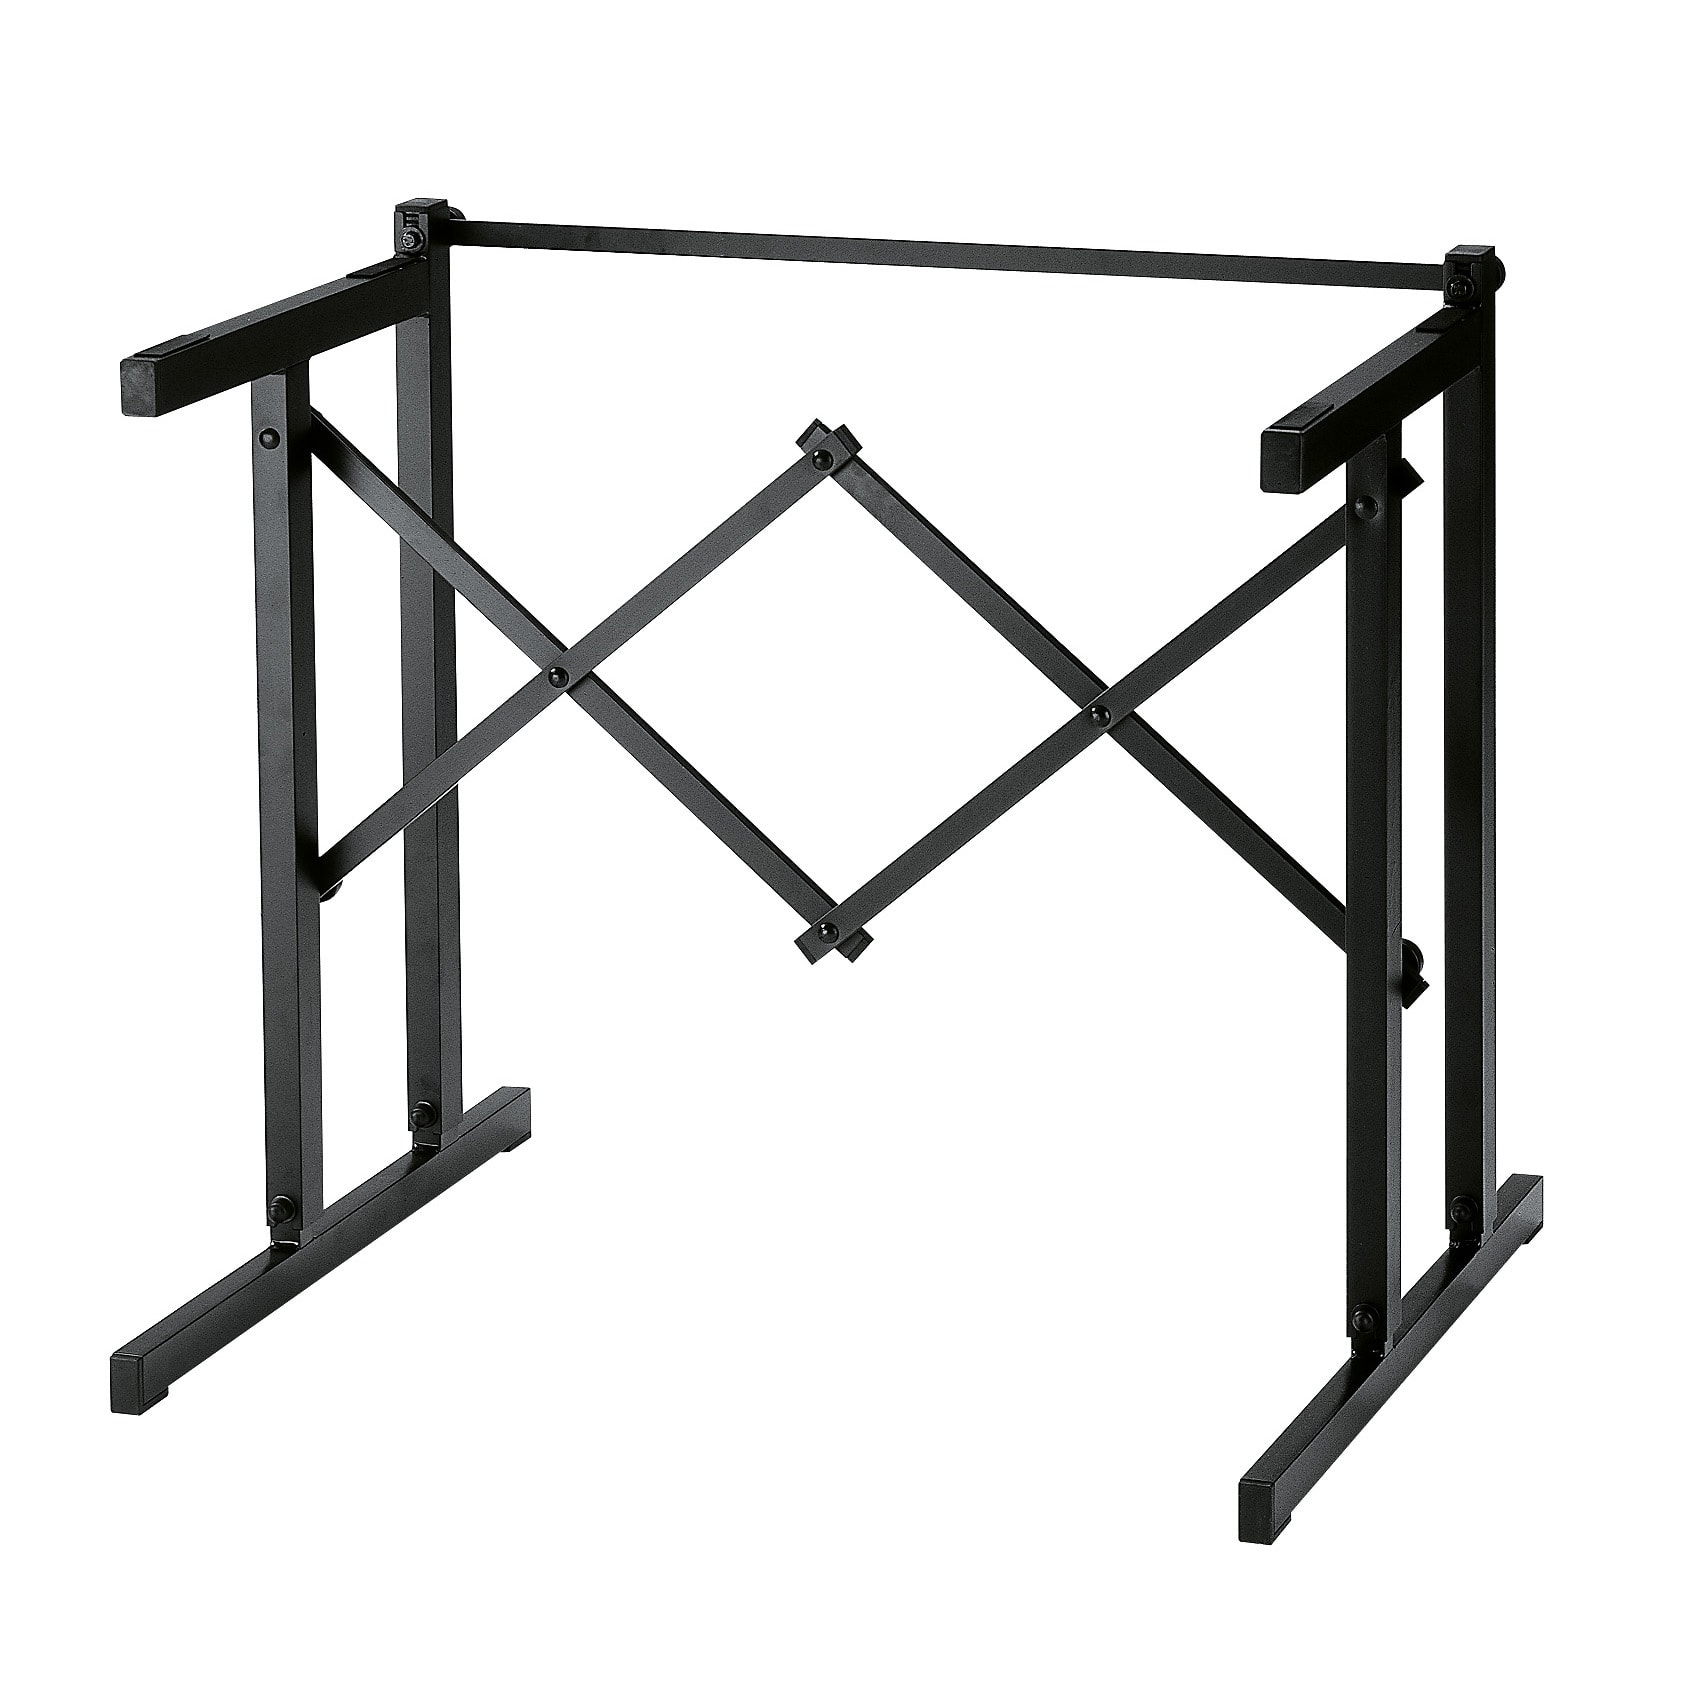 KM18880 - Table-style keyboard stand